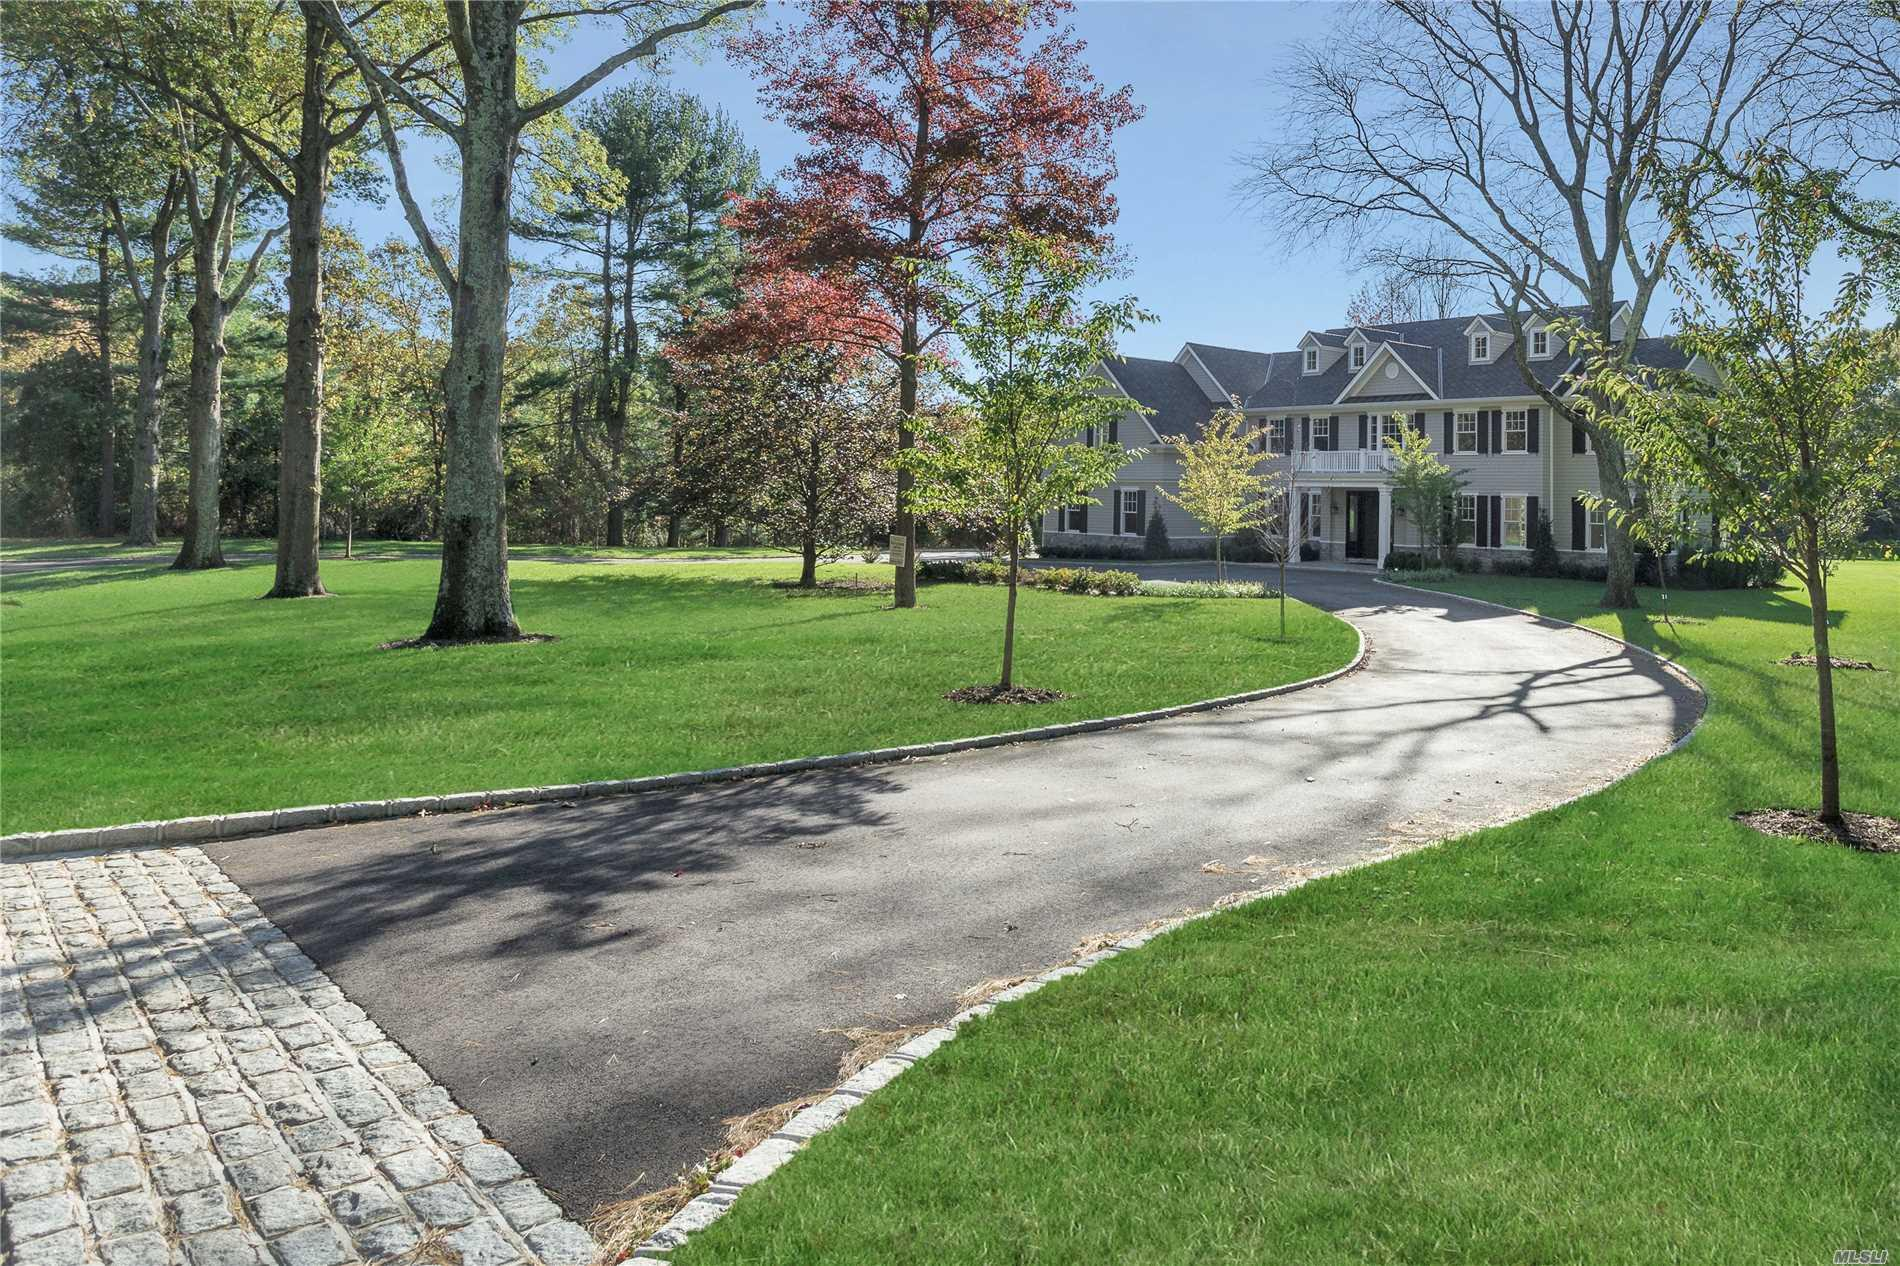 Imagine living in a brand new, state-of-the-art six-bedroom, five-and-a-half-bath home with a traditional manor-house style in a beautiful mature neighborhood of two-acre-plus homes and with only a modicum of passersby. Such is what this magnificent home offers. Standing majestically on 2.11-acres of sweeping emerald lawns dotted by towering mature trees and enfolded on three sides by walls of foliage, and approached by a long circular drive, this fabulous, newly finished Colonial has it all, including room for a possible pool and tennis court and an ideal location. Situated in the heart of Old Westbury, the home part of a section of homes that has one entrance, two cul-de-sacs, and a circular road - ideal for pleasant strolls or biking. Practically surrounded by golf courses and universities, the area is also within easy reach of major expressways for easy commuting. Long a popular area for Manhattan's magnates and luminaries, Old Westbury is just 30 minutes by railway or highway from Manhattan and Kennedy and LaGuardia airports. Conveniently located near parks and museums, it is just a short drive from fine dining, premier shopping, miles of public equestrian trails, polo club, yacht clubs and beaches.   Its traditional center-hall floor plan has been beautifully tweaked to allow easy, open flow throughout its entertaining spaces, with French doors ready to close for privacy when needed. Boasting gleaming hardwood floors, elegant crown moldings, and a myriad of windows and French doors, the first floor welcomes guests through a vestibule, with guest closets, into a spectacular two-story entrance foyer with graceful bridal staircase and stunning powder room. To the left, is the banquet-sized formal dining room in all its elegance, and to the right, a parlor is open to the inviting great room with its magnificent marble-faced gas fireplace and windows plus French doors opening to the rear property. Entered from the parlor and the living room, the spacious and sunny library/den is flooded with verdant views through many windows on three exposures. Entered from the great room and the foyer, spacious sun-drenched eat-in-kitchen offers the finest in today's finishes and appliances. Gray glass-tile backsplash accents custom oak stained walnut cabinetry with white quartzite countertops and farm sink while a large cherry center island, with prep sink and seating area, coordinates with the hardwood floors. High-send appliances include a 6-burner stainless-steel gas stove with griddle and double-oven; a side-by-side, integrated full-size refrigerator and full-size freezer; plus an integrated dishwasher; and a stainless-steel built-in microwave. A butler's pantry, accessing the dining room, provides cabinetry, similar to the kitchen, plus entry to a large walk-in pantry. Fully open to the kitchen and the great room, the sunny breakfast area overlooks the rear property through a wall of French windows and door to the patio – idea for al fresco dining. A hall off the kitchen, with back stairs, leads to the attached three-car garage, a large mudroom with many closets, including one walk-in, and a well-equipped laundry room. A nearby guest suite features a designer bath with shower and a sunny bedroom with double-closet. On the second floor, the palatial master suite enjoys its own private wing including an immense master bedroom with romantic gas fireplace; a dressing room with dressing table and pocket doors opening to two spacious walk-in closets; and a luxurious white-marble master bath. Several windows above a free-standing soaking tub allow sunlight to dance across the custom twin vanity, huge frameless-glass-enclosed shower, and door to the water closet. Across the foyer, the remainder of this level includes four additional bedrooms, each with walk-in closets, two with baths en suite, and two sharing a hall bath next to a spacious upstairs lounge. The full unfinished basement provides many opportunities for storage and expansion. Come experience the serenity and splendor of this exceptional, brand-new property, a perfect setting for today's gracious North Shore lifestyle.